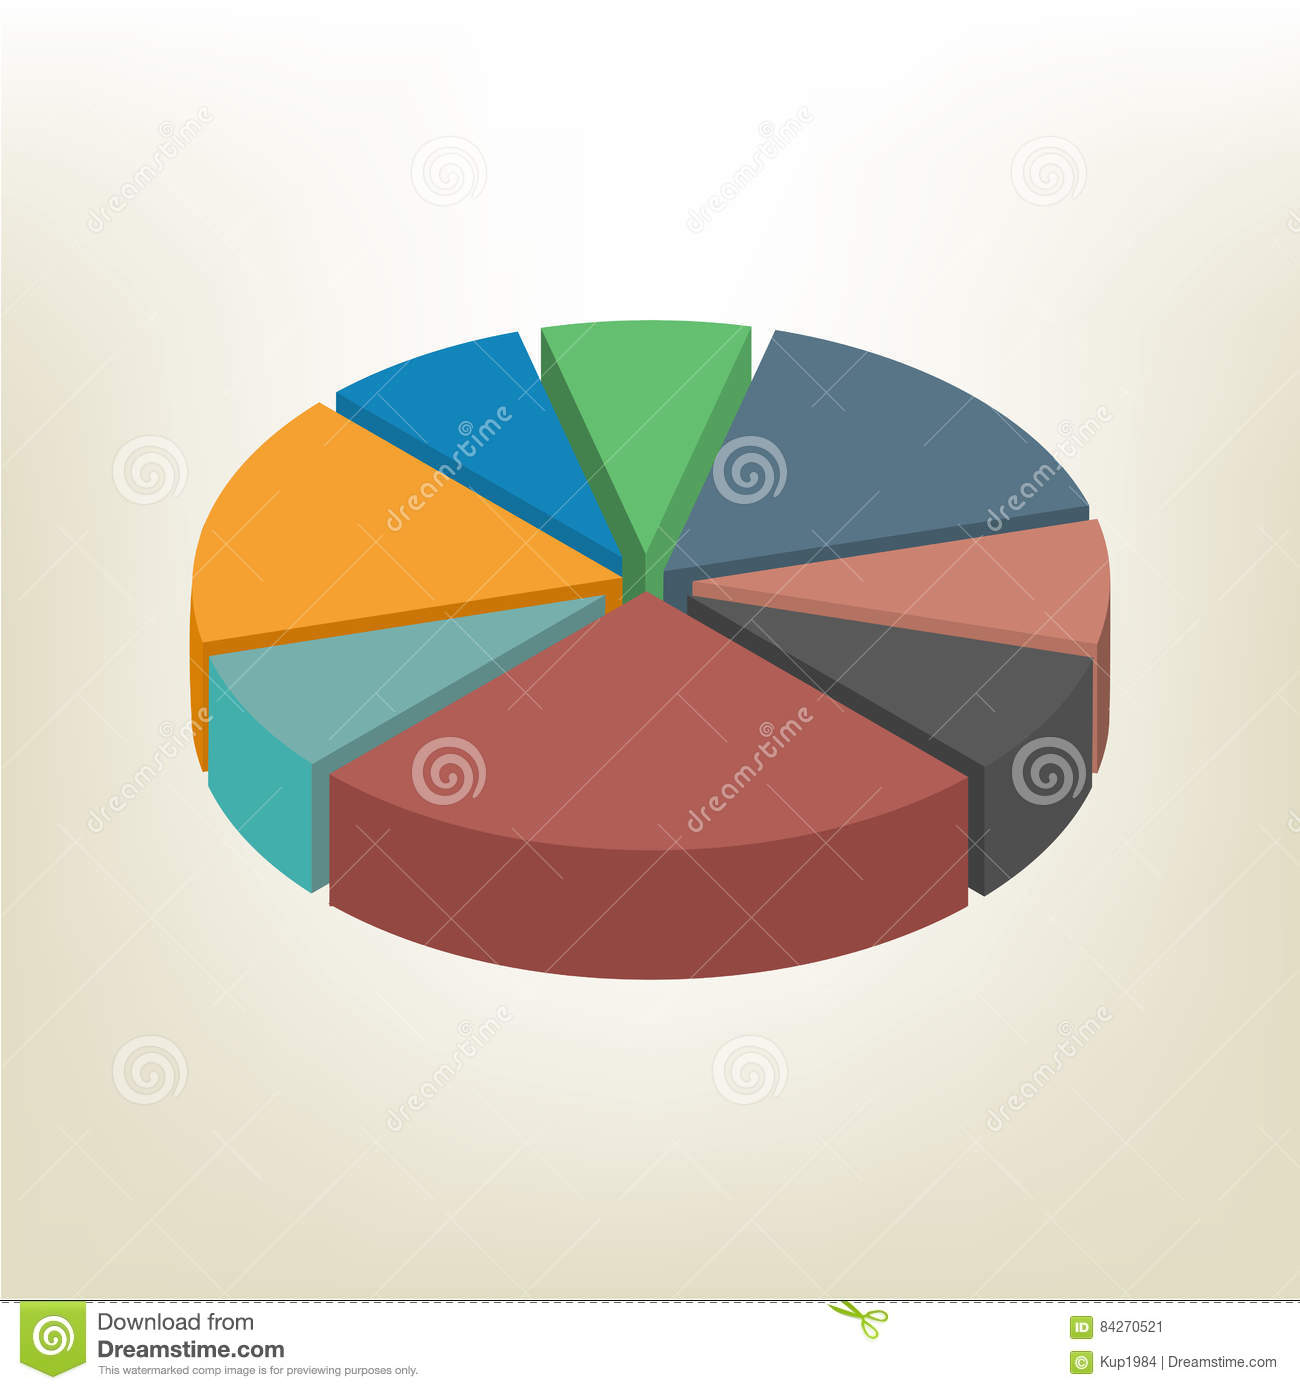 Using Financial Report Pie Chart